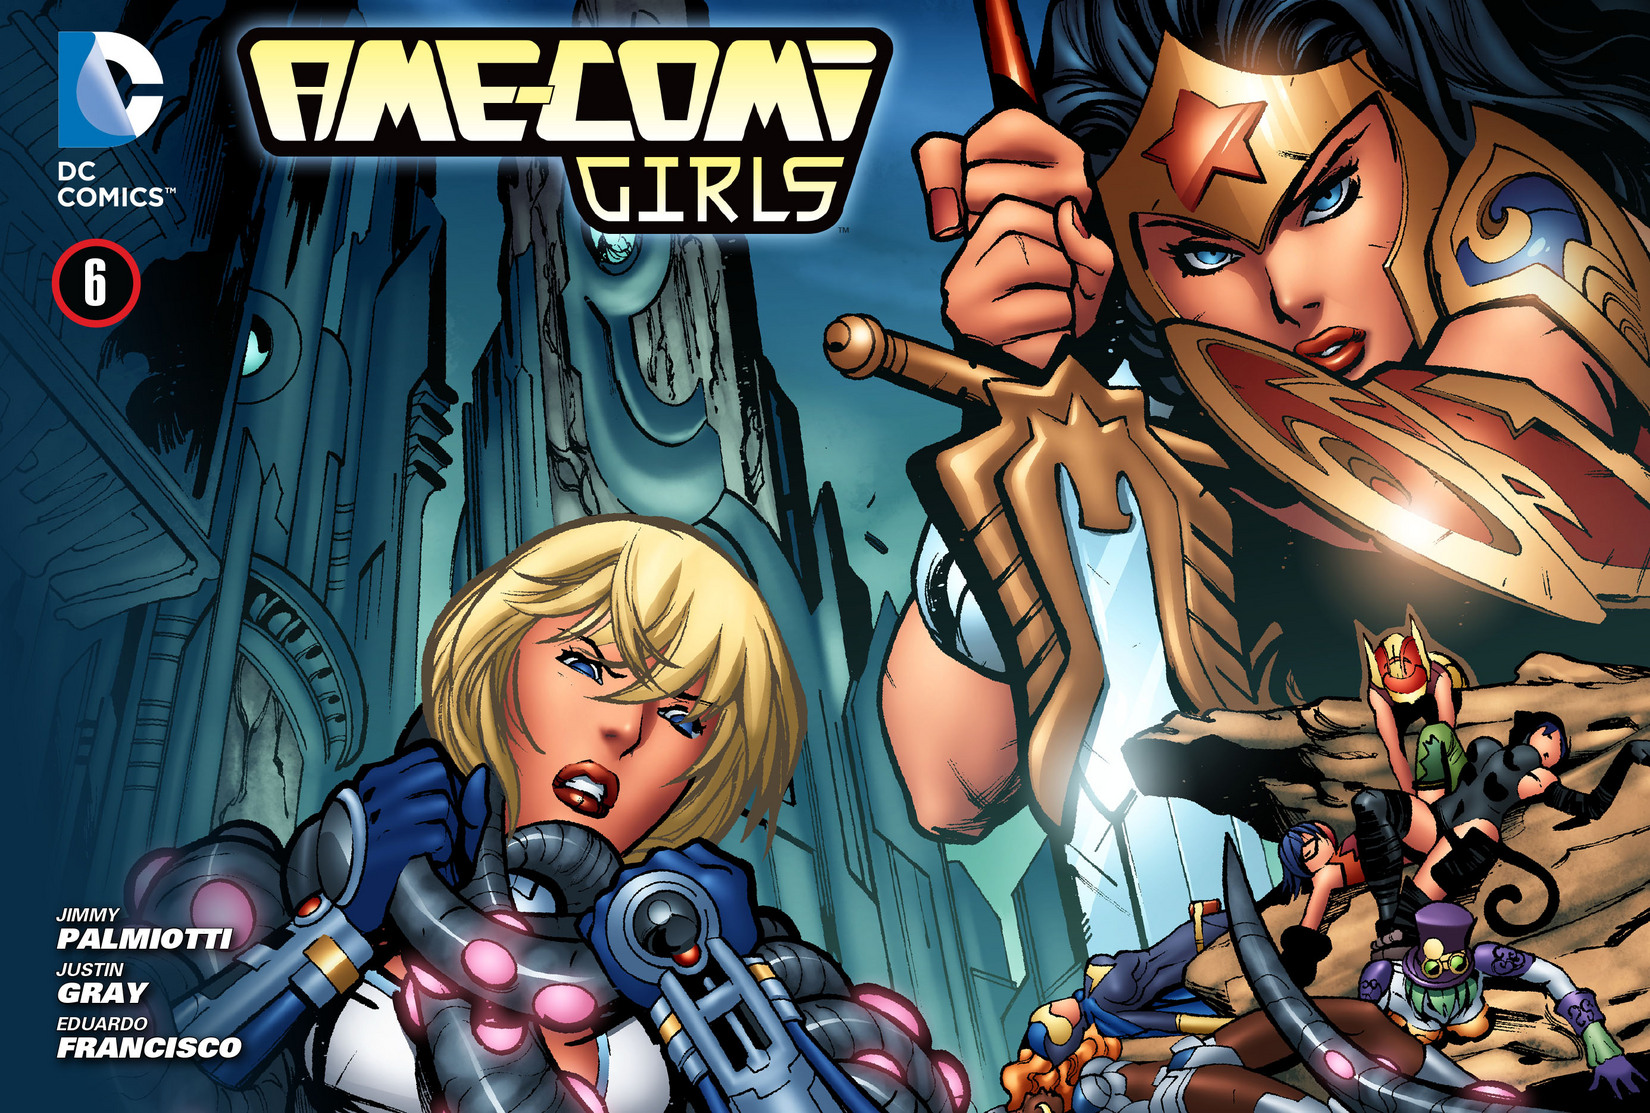 Read online Ame-Comi Girls comic -  Issue #6 - 1